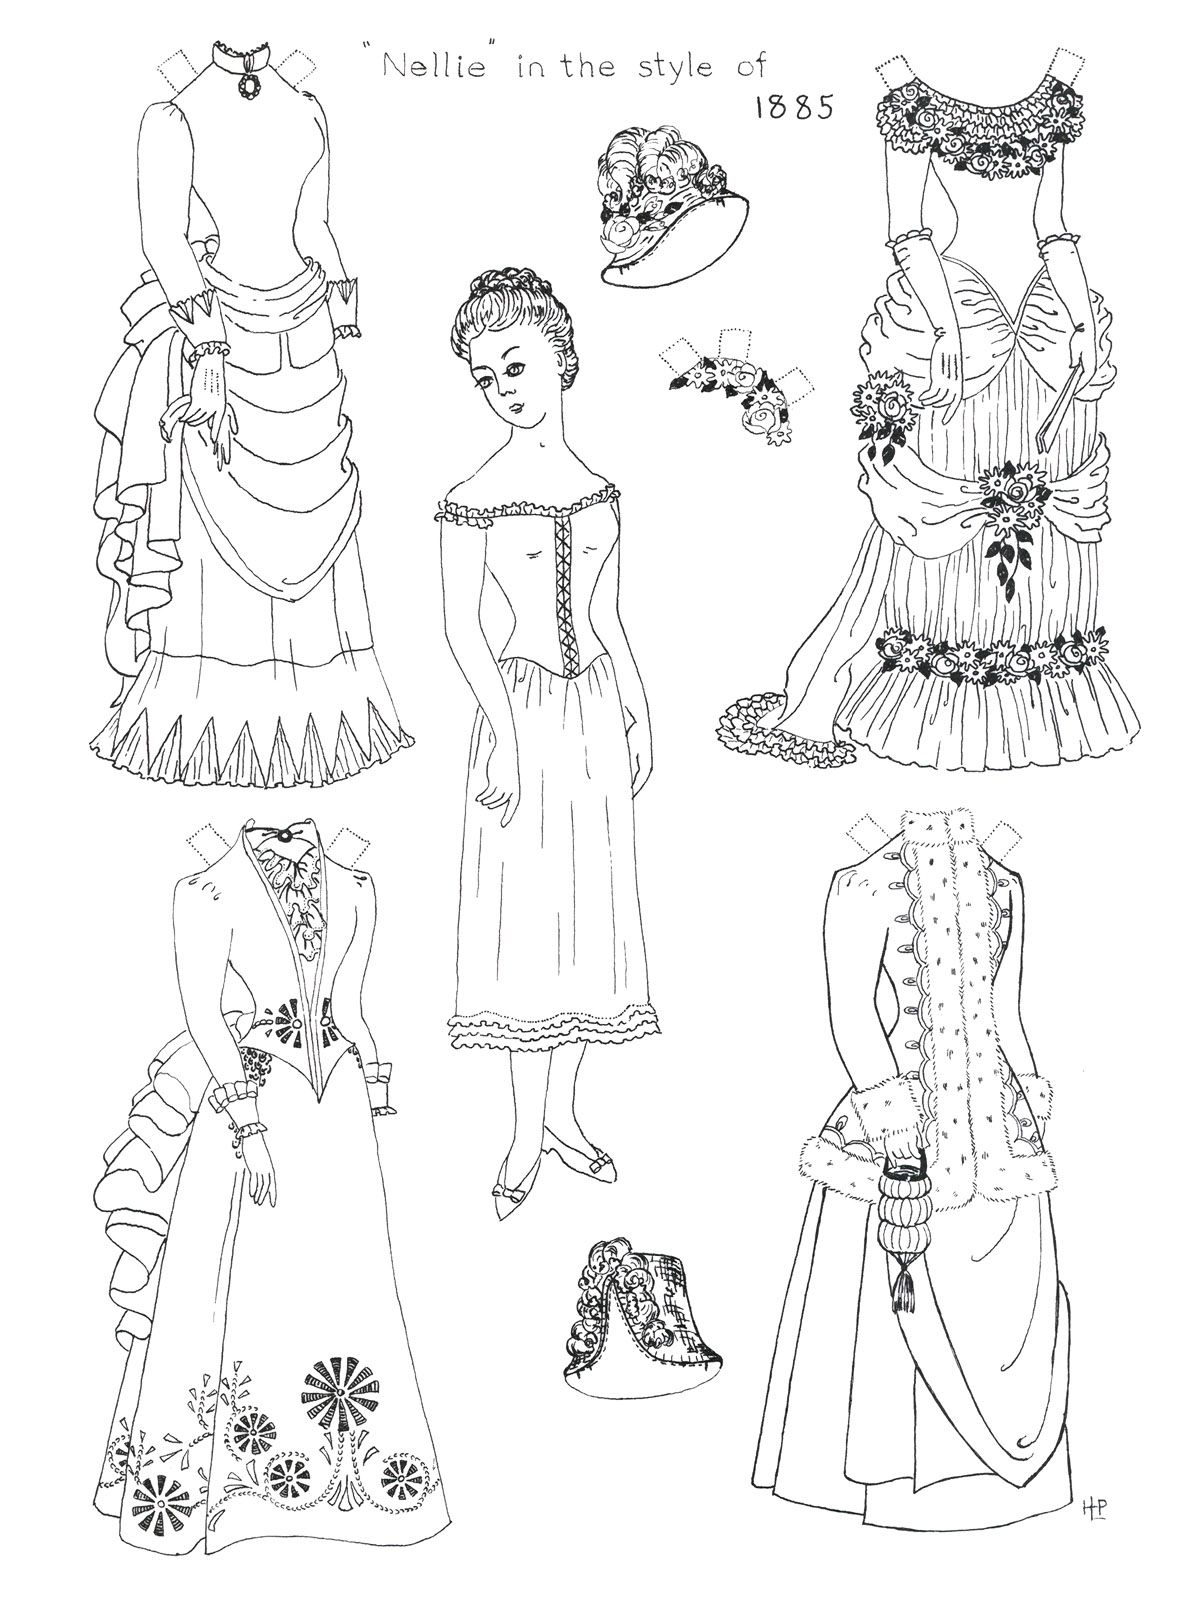 Victorian Paper Doll Printed On Mag Paper Cut Out And Let